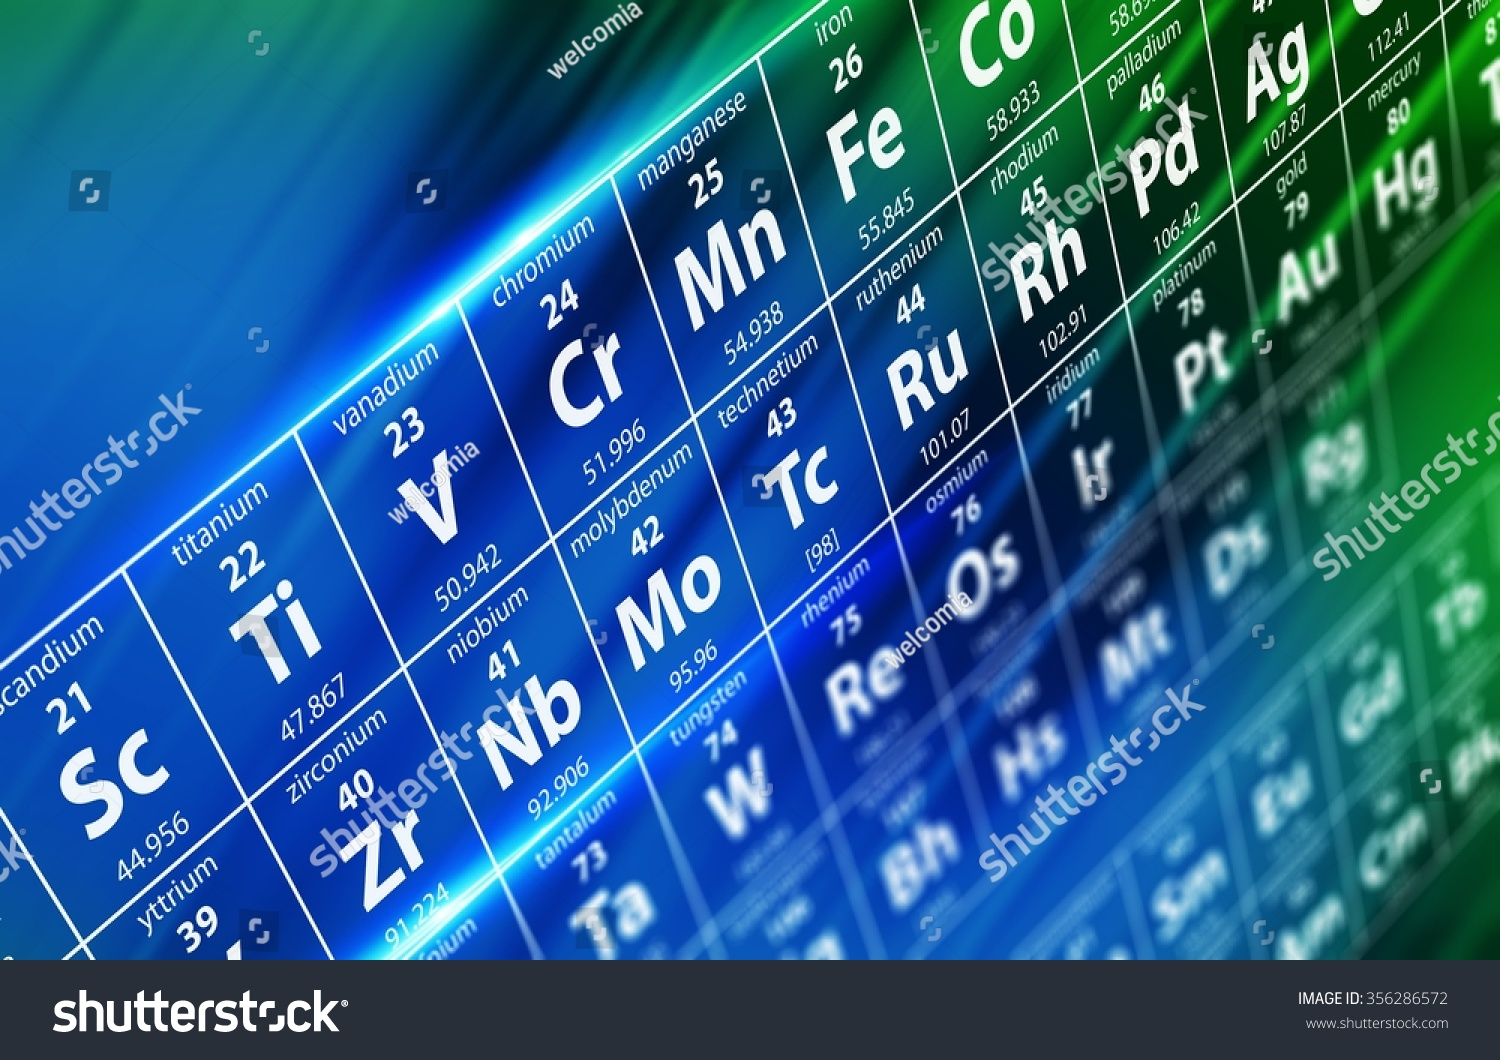 Periodic table elements concept illustration depth stock periodic table of elements concept illustration with depth of field chemistry and science conceptual illustration gamestrikefo Images